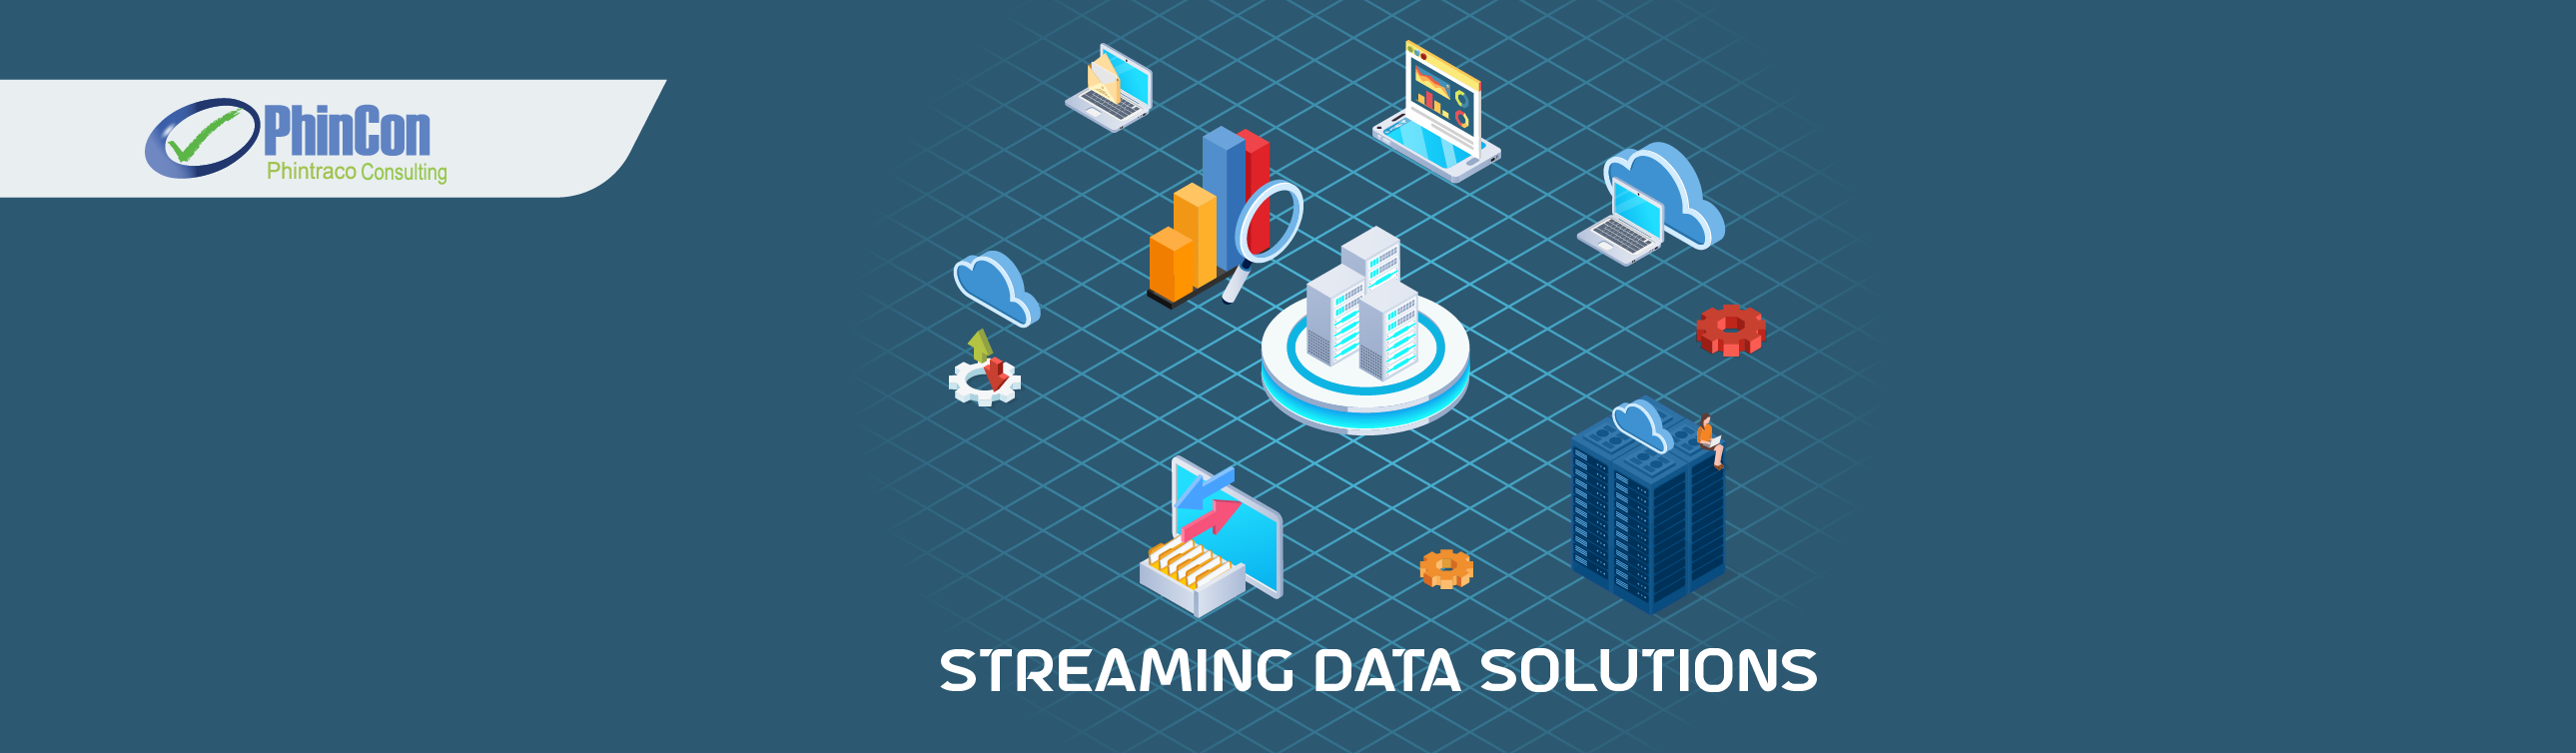 Optimizing Data-driven Decisions Making with Streaming Data Technology